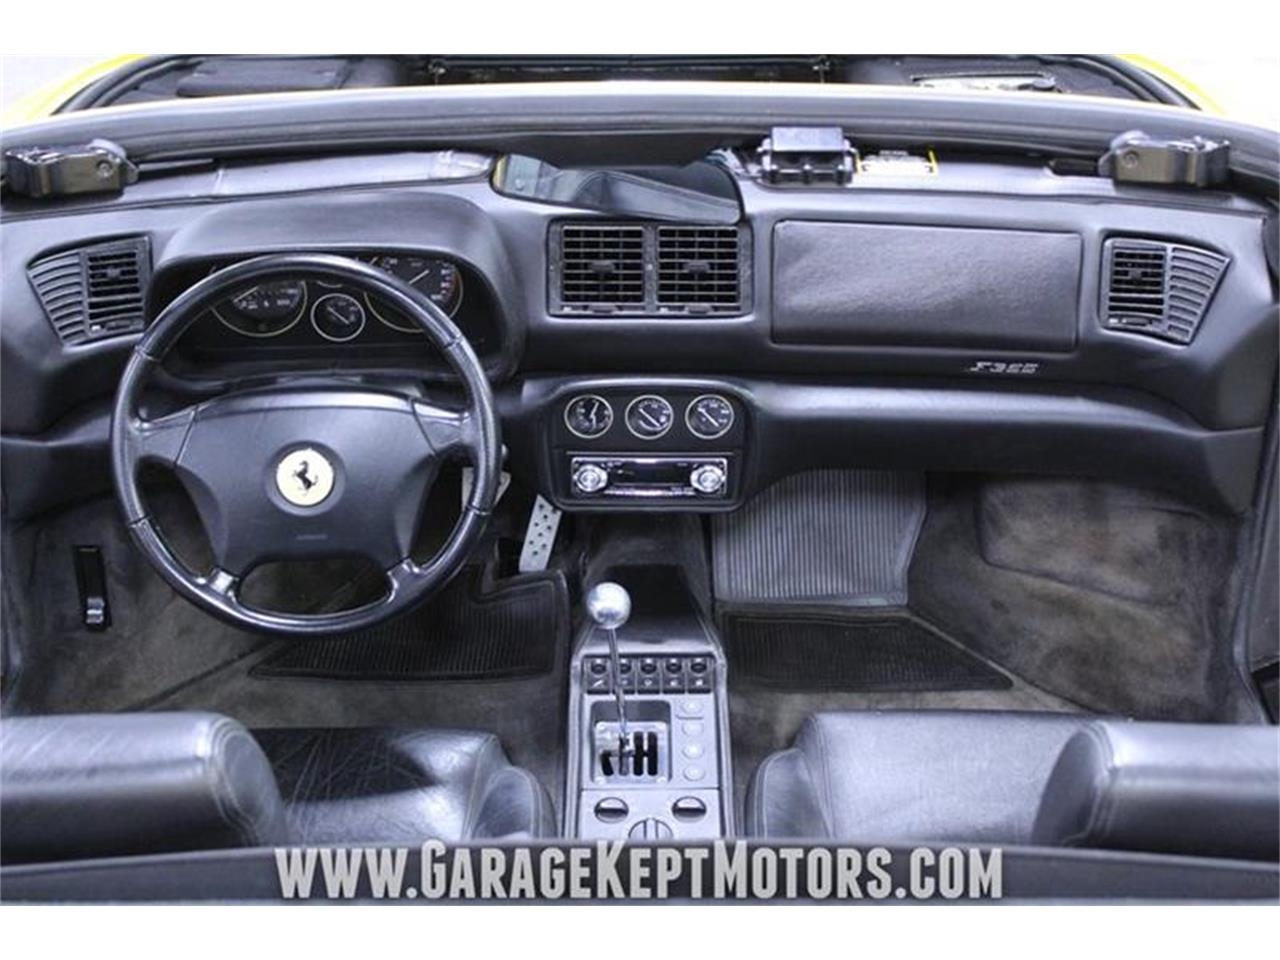 Large Picture of 1997 Ferrari F355 - $59,900.00 - PWXC